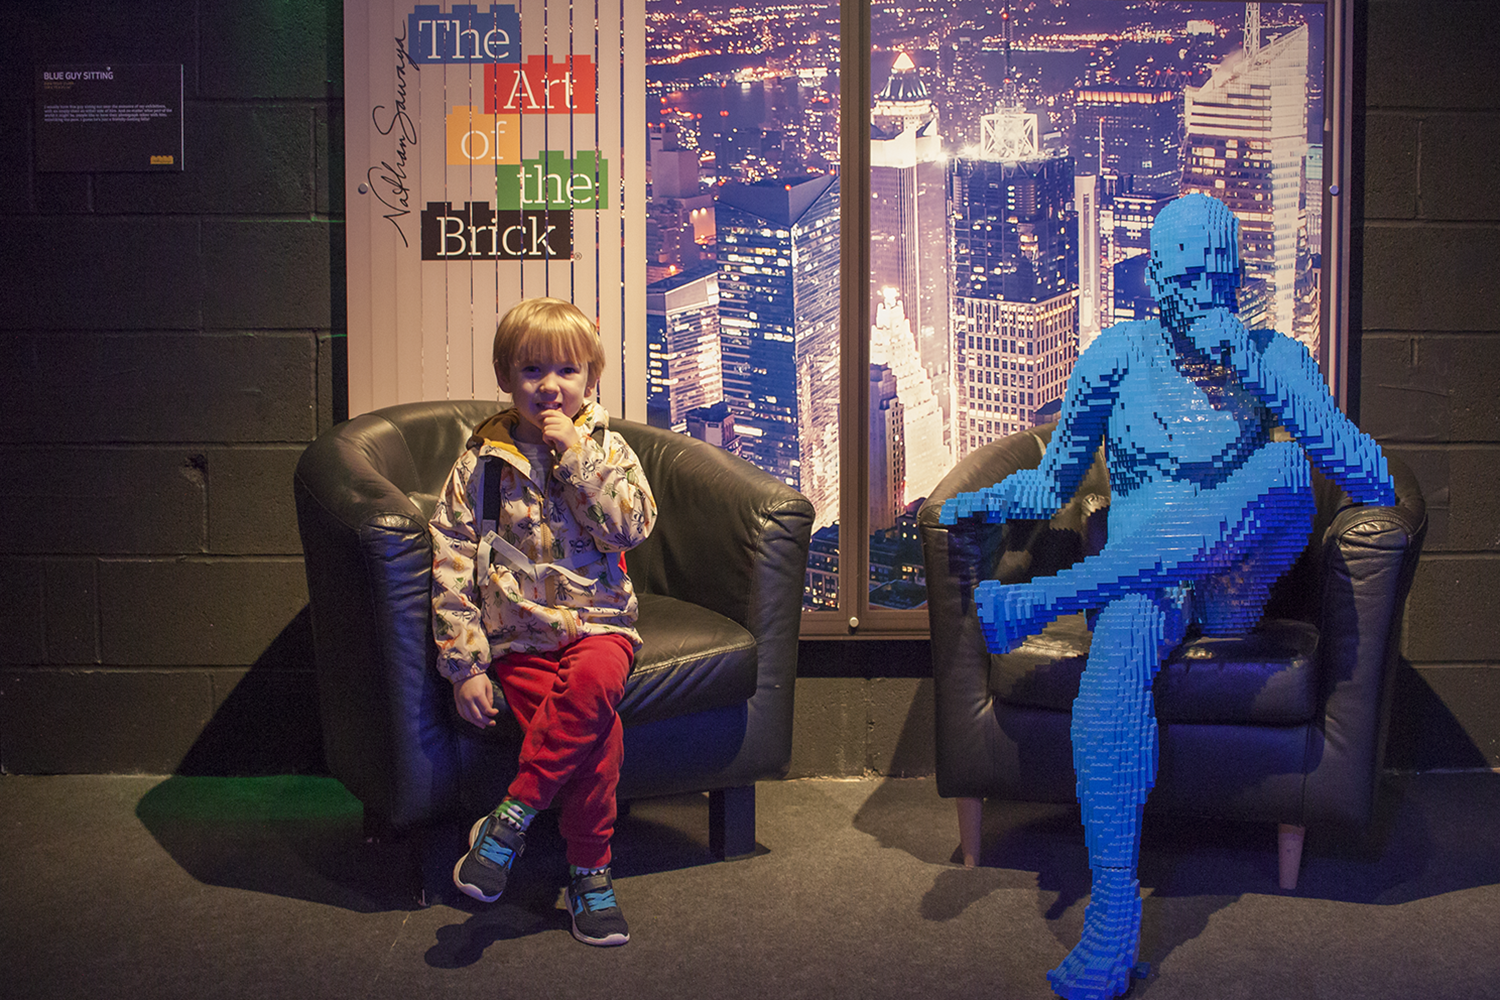 A boy copying the pose of a life size Lego man sitting in a chair